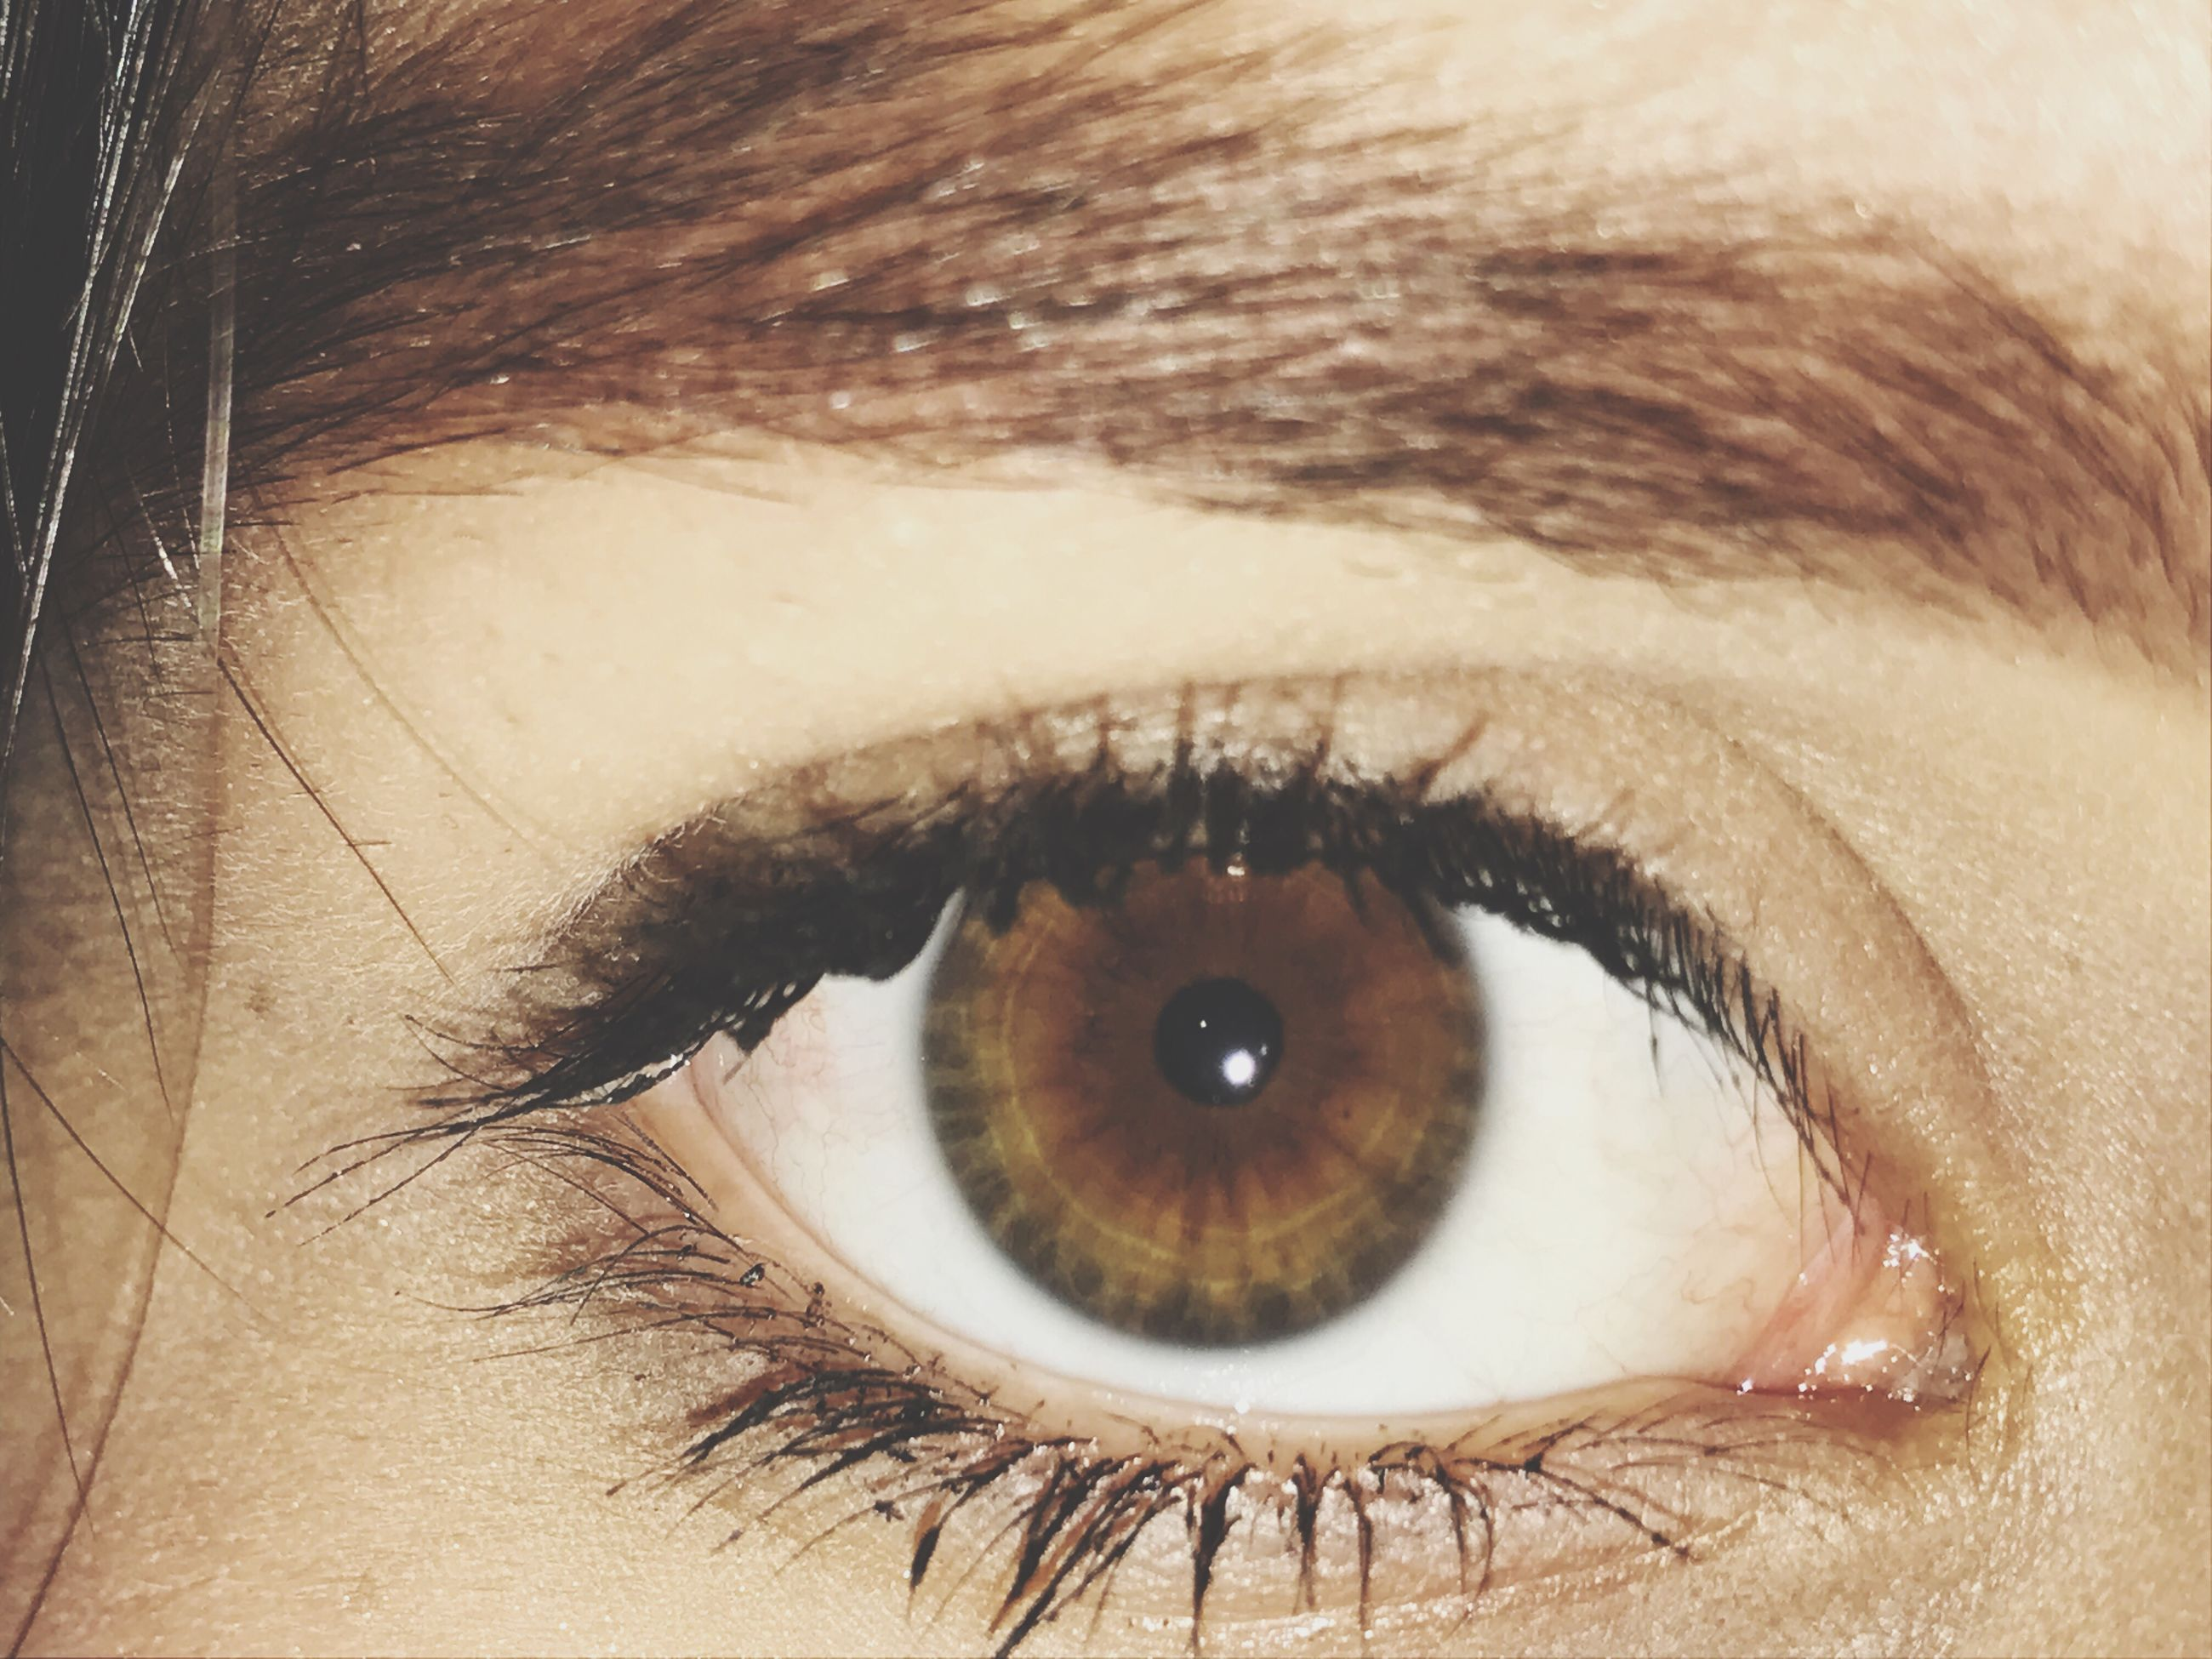 human eye, eyelash, real people, close-up, sensory perception, one person, human body part, looking at camera, backgrounds, eyesight, eyeball, full frame, portrait, beautiful woman, young adult, eyebrow, vision, people, outdoors, day, adults only, adult